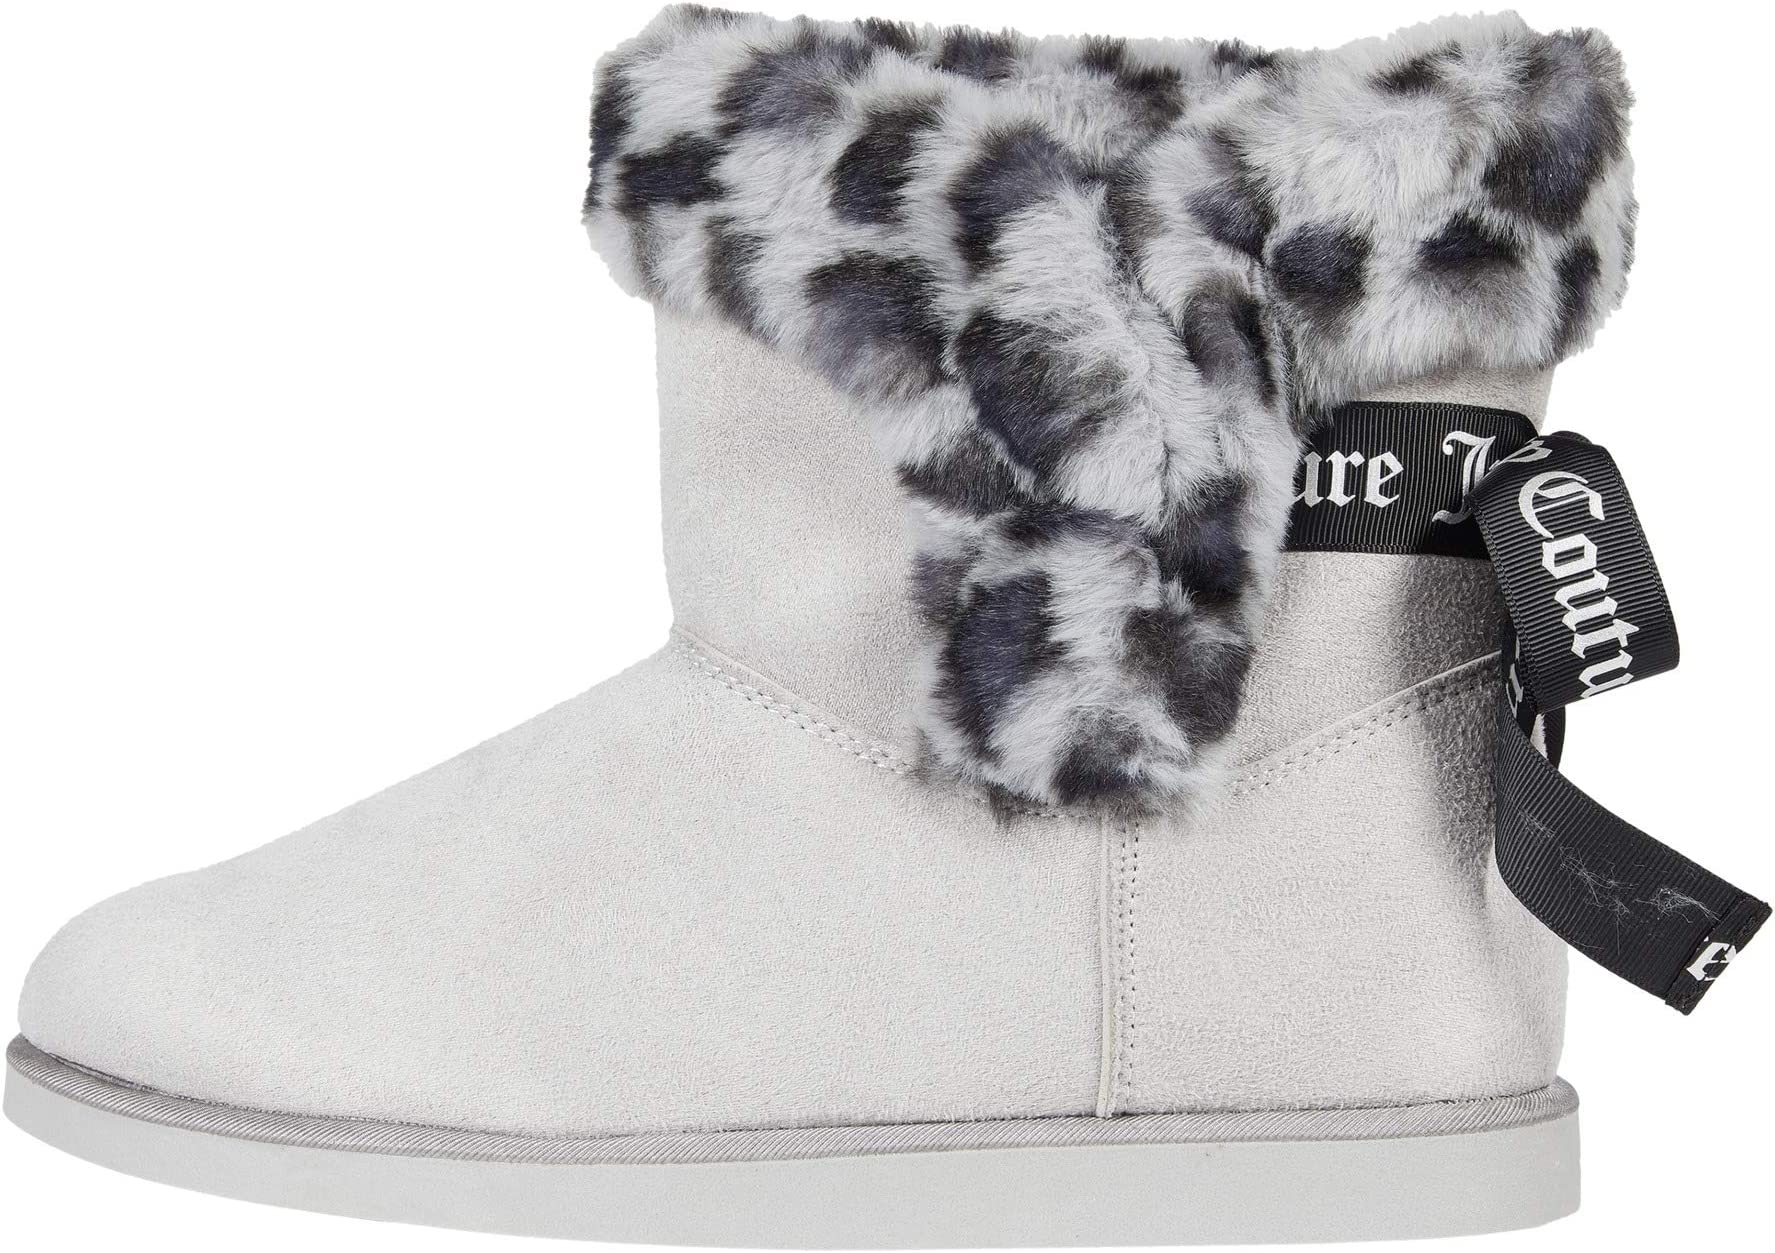 Juicy Couture King | Women's shoes | 2020 Newest